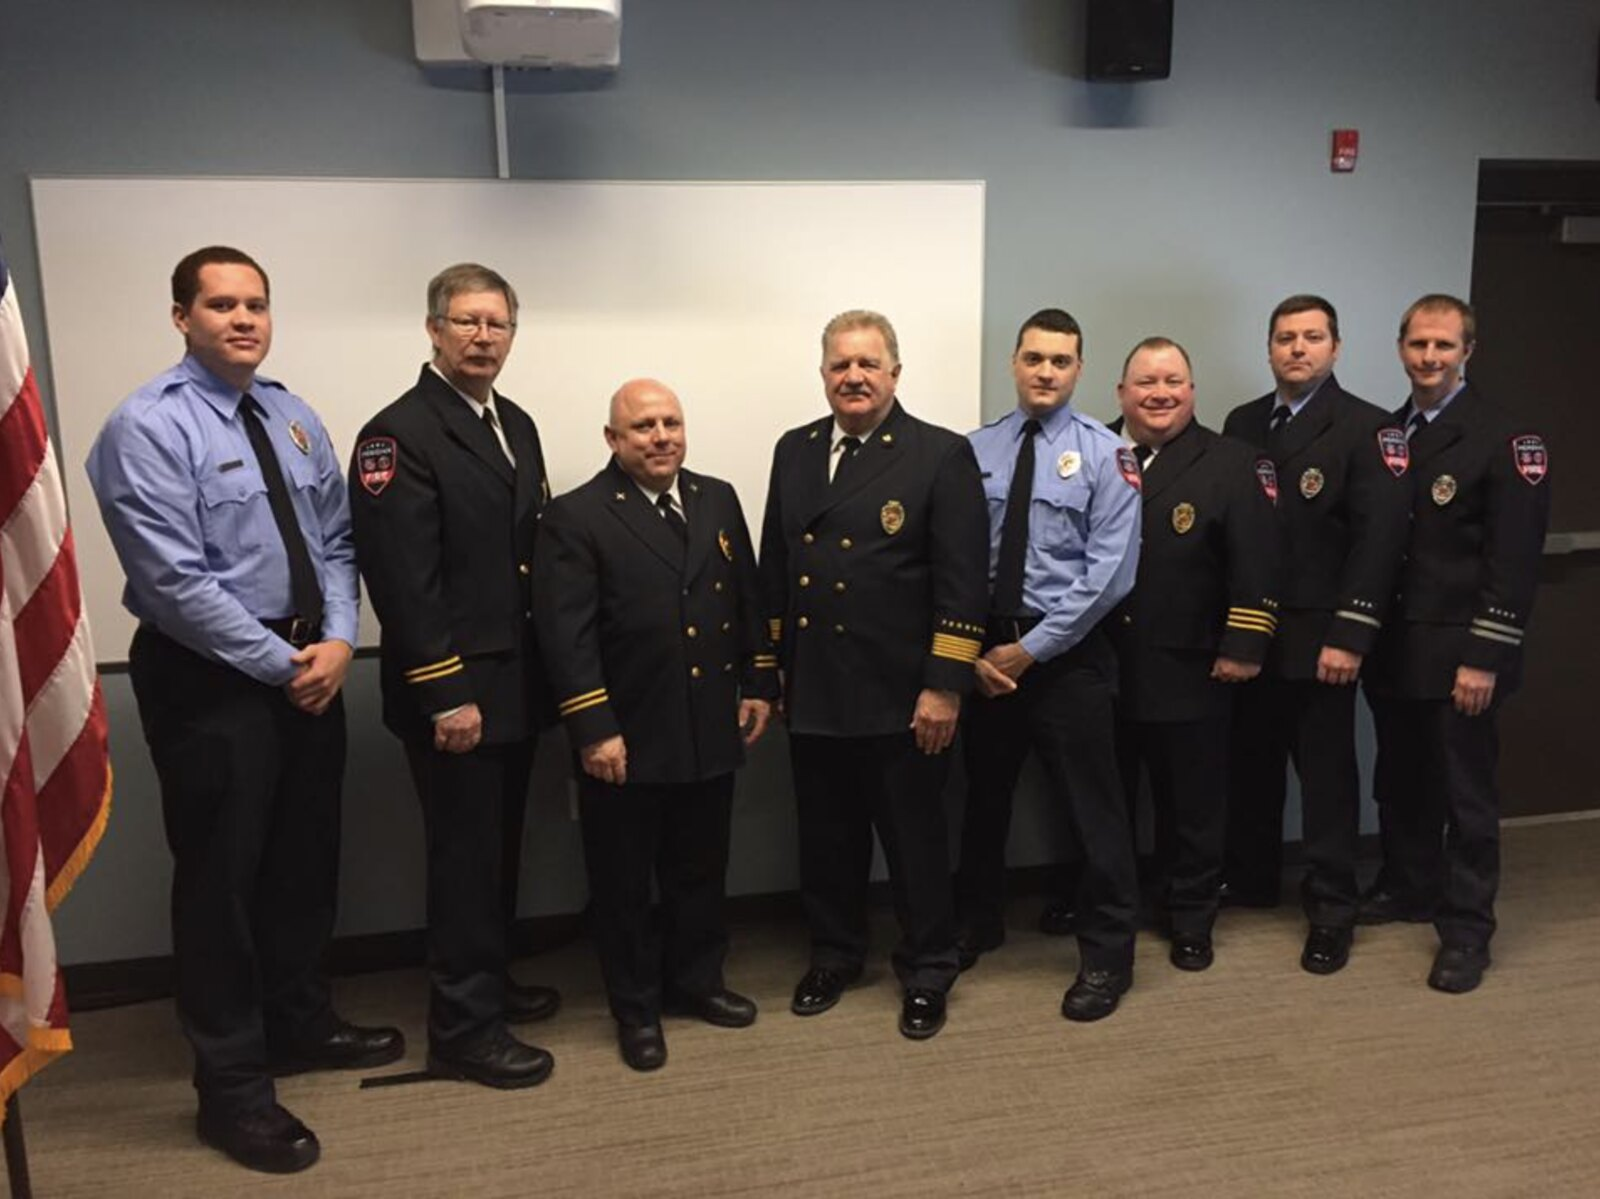 Meridian Township Fire Department Welcomes Two New Firefighters